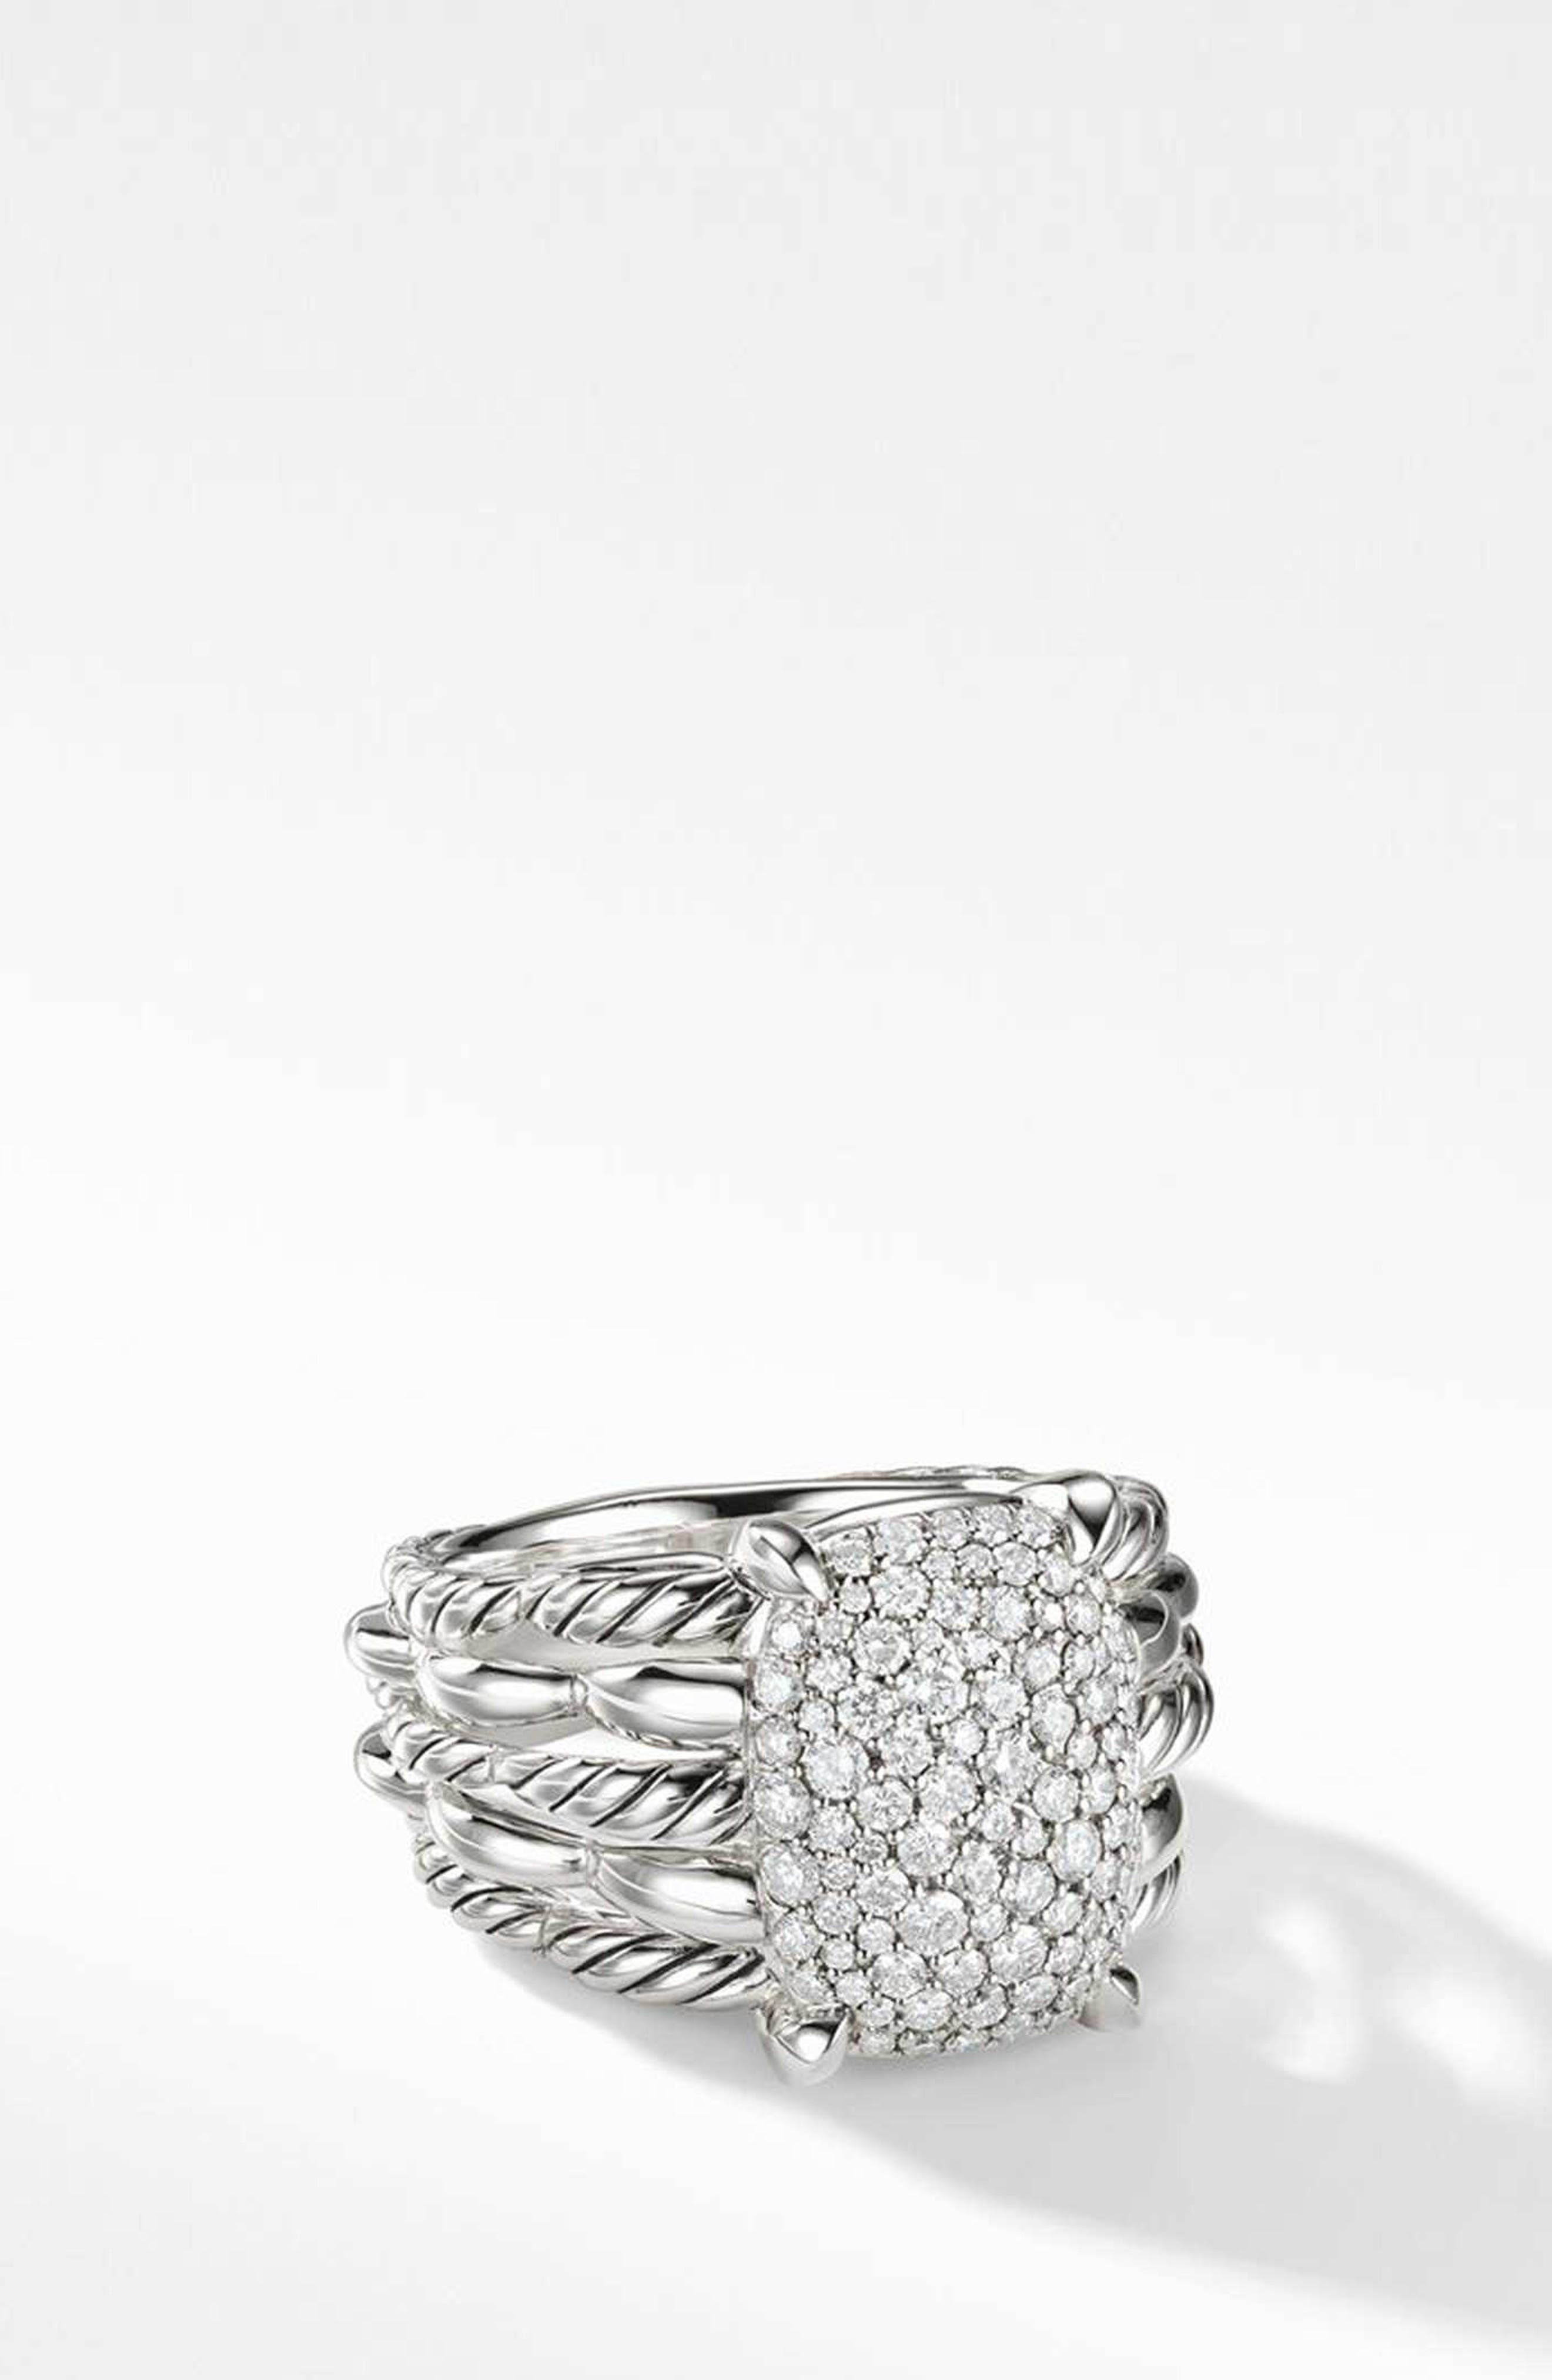 Tides Statement Ring with Pavé Plate,                         Main,                         color, STERLING SILVER/ DIAMOND